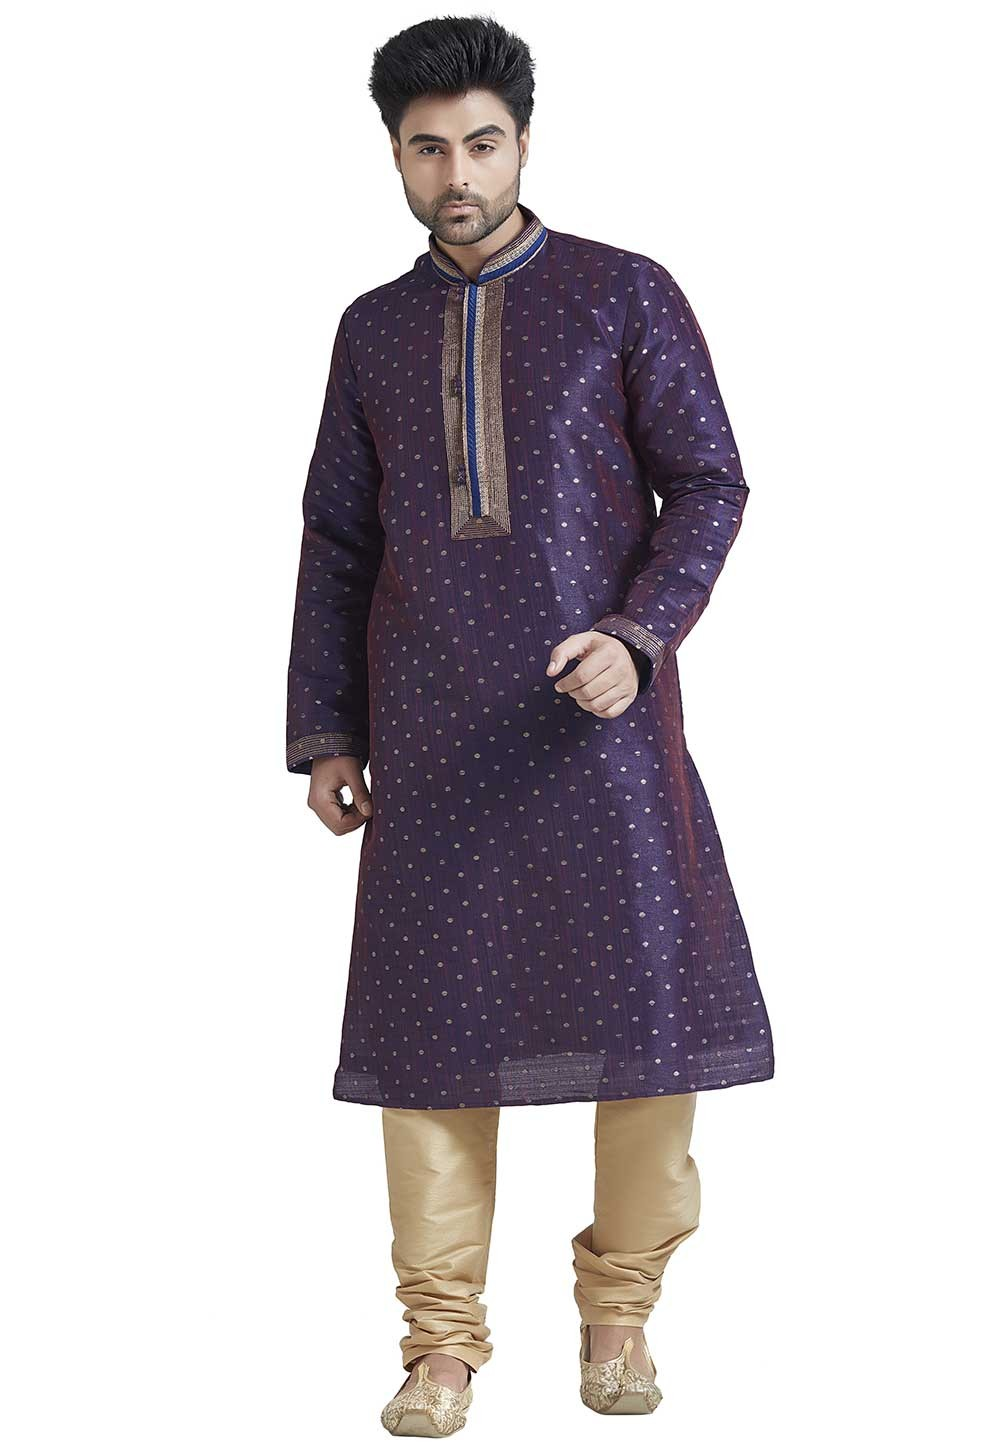 Purple Colour Party Wear Indian Kurta Pajama for Mens